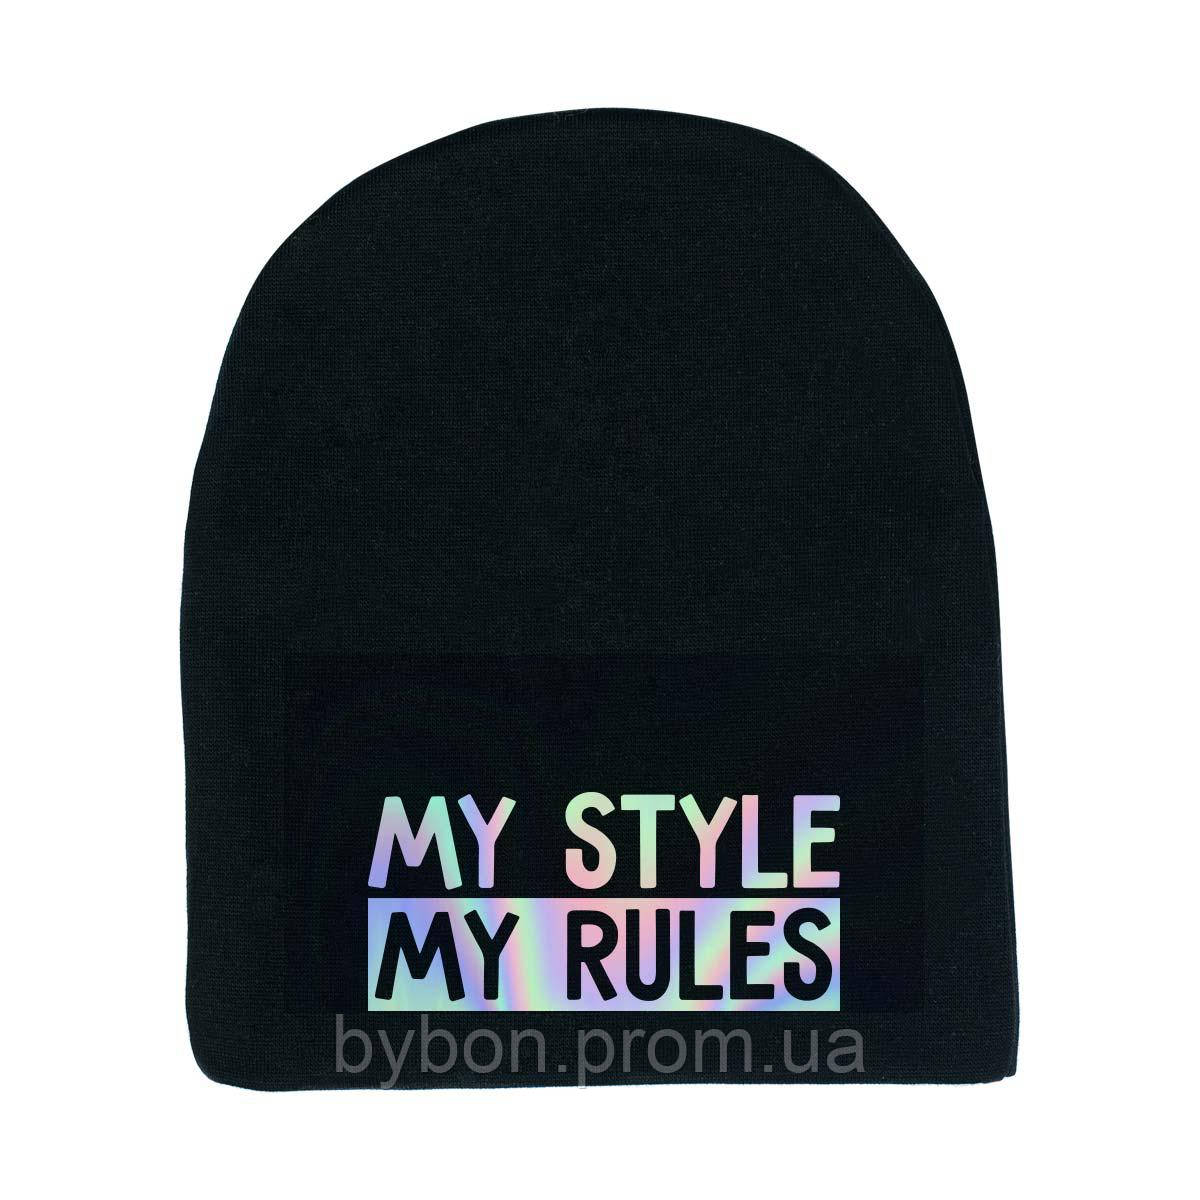 Шапка My style my rules, hologram